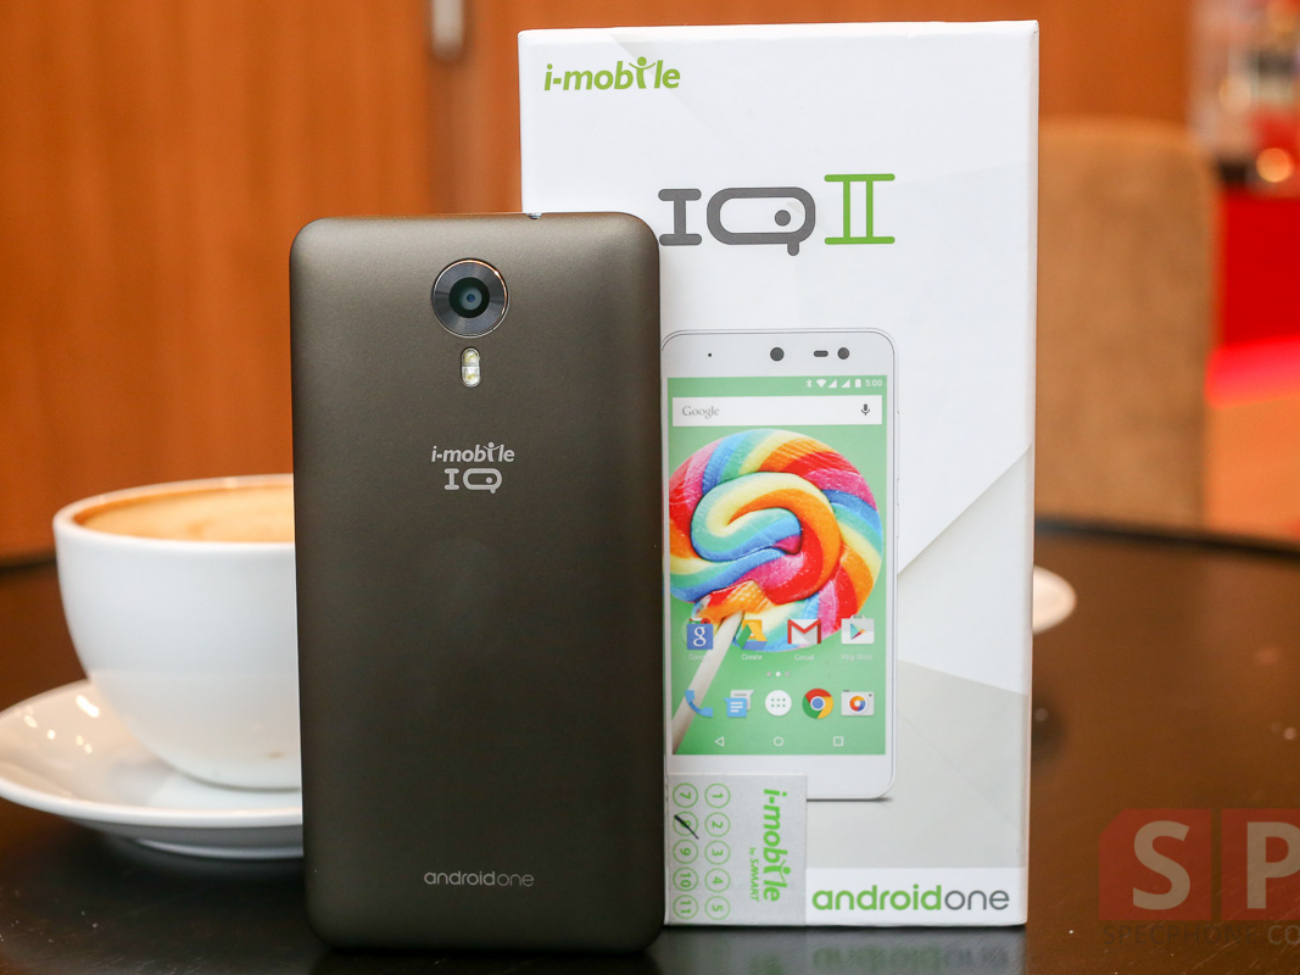 Reivew-i-mobile-IQ-II-Android-One-SpecPhone-020